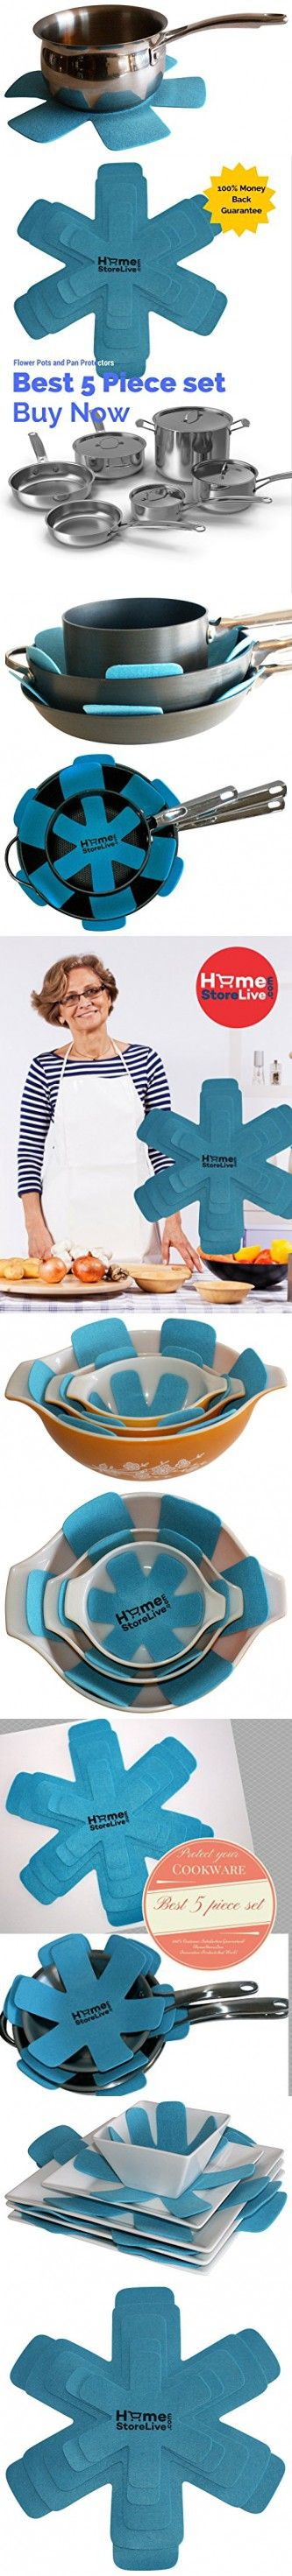 Best 25+ Cookware accessories ideas only on Pinterest | Copper ...